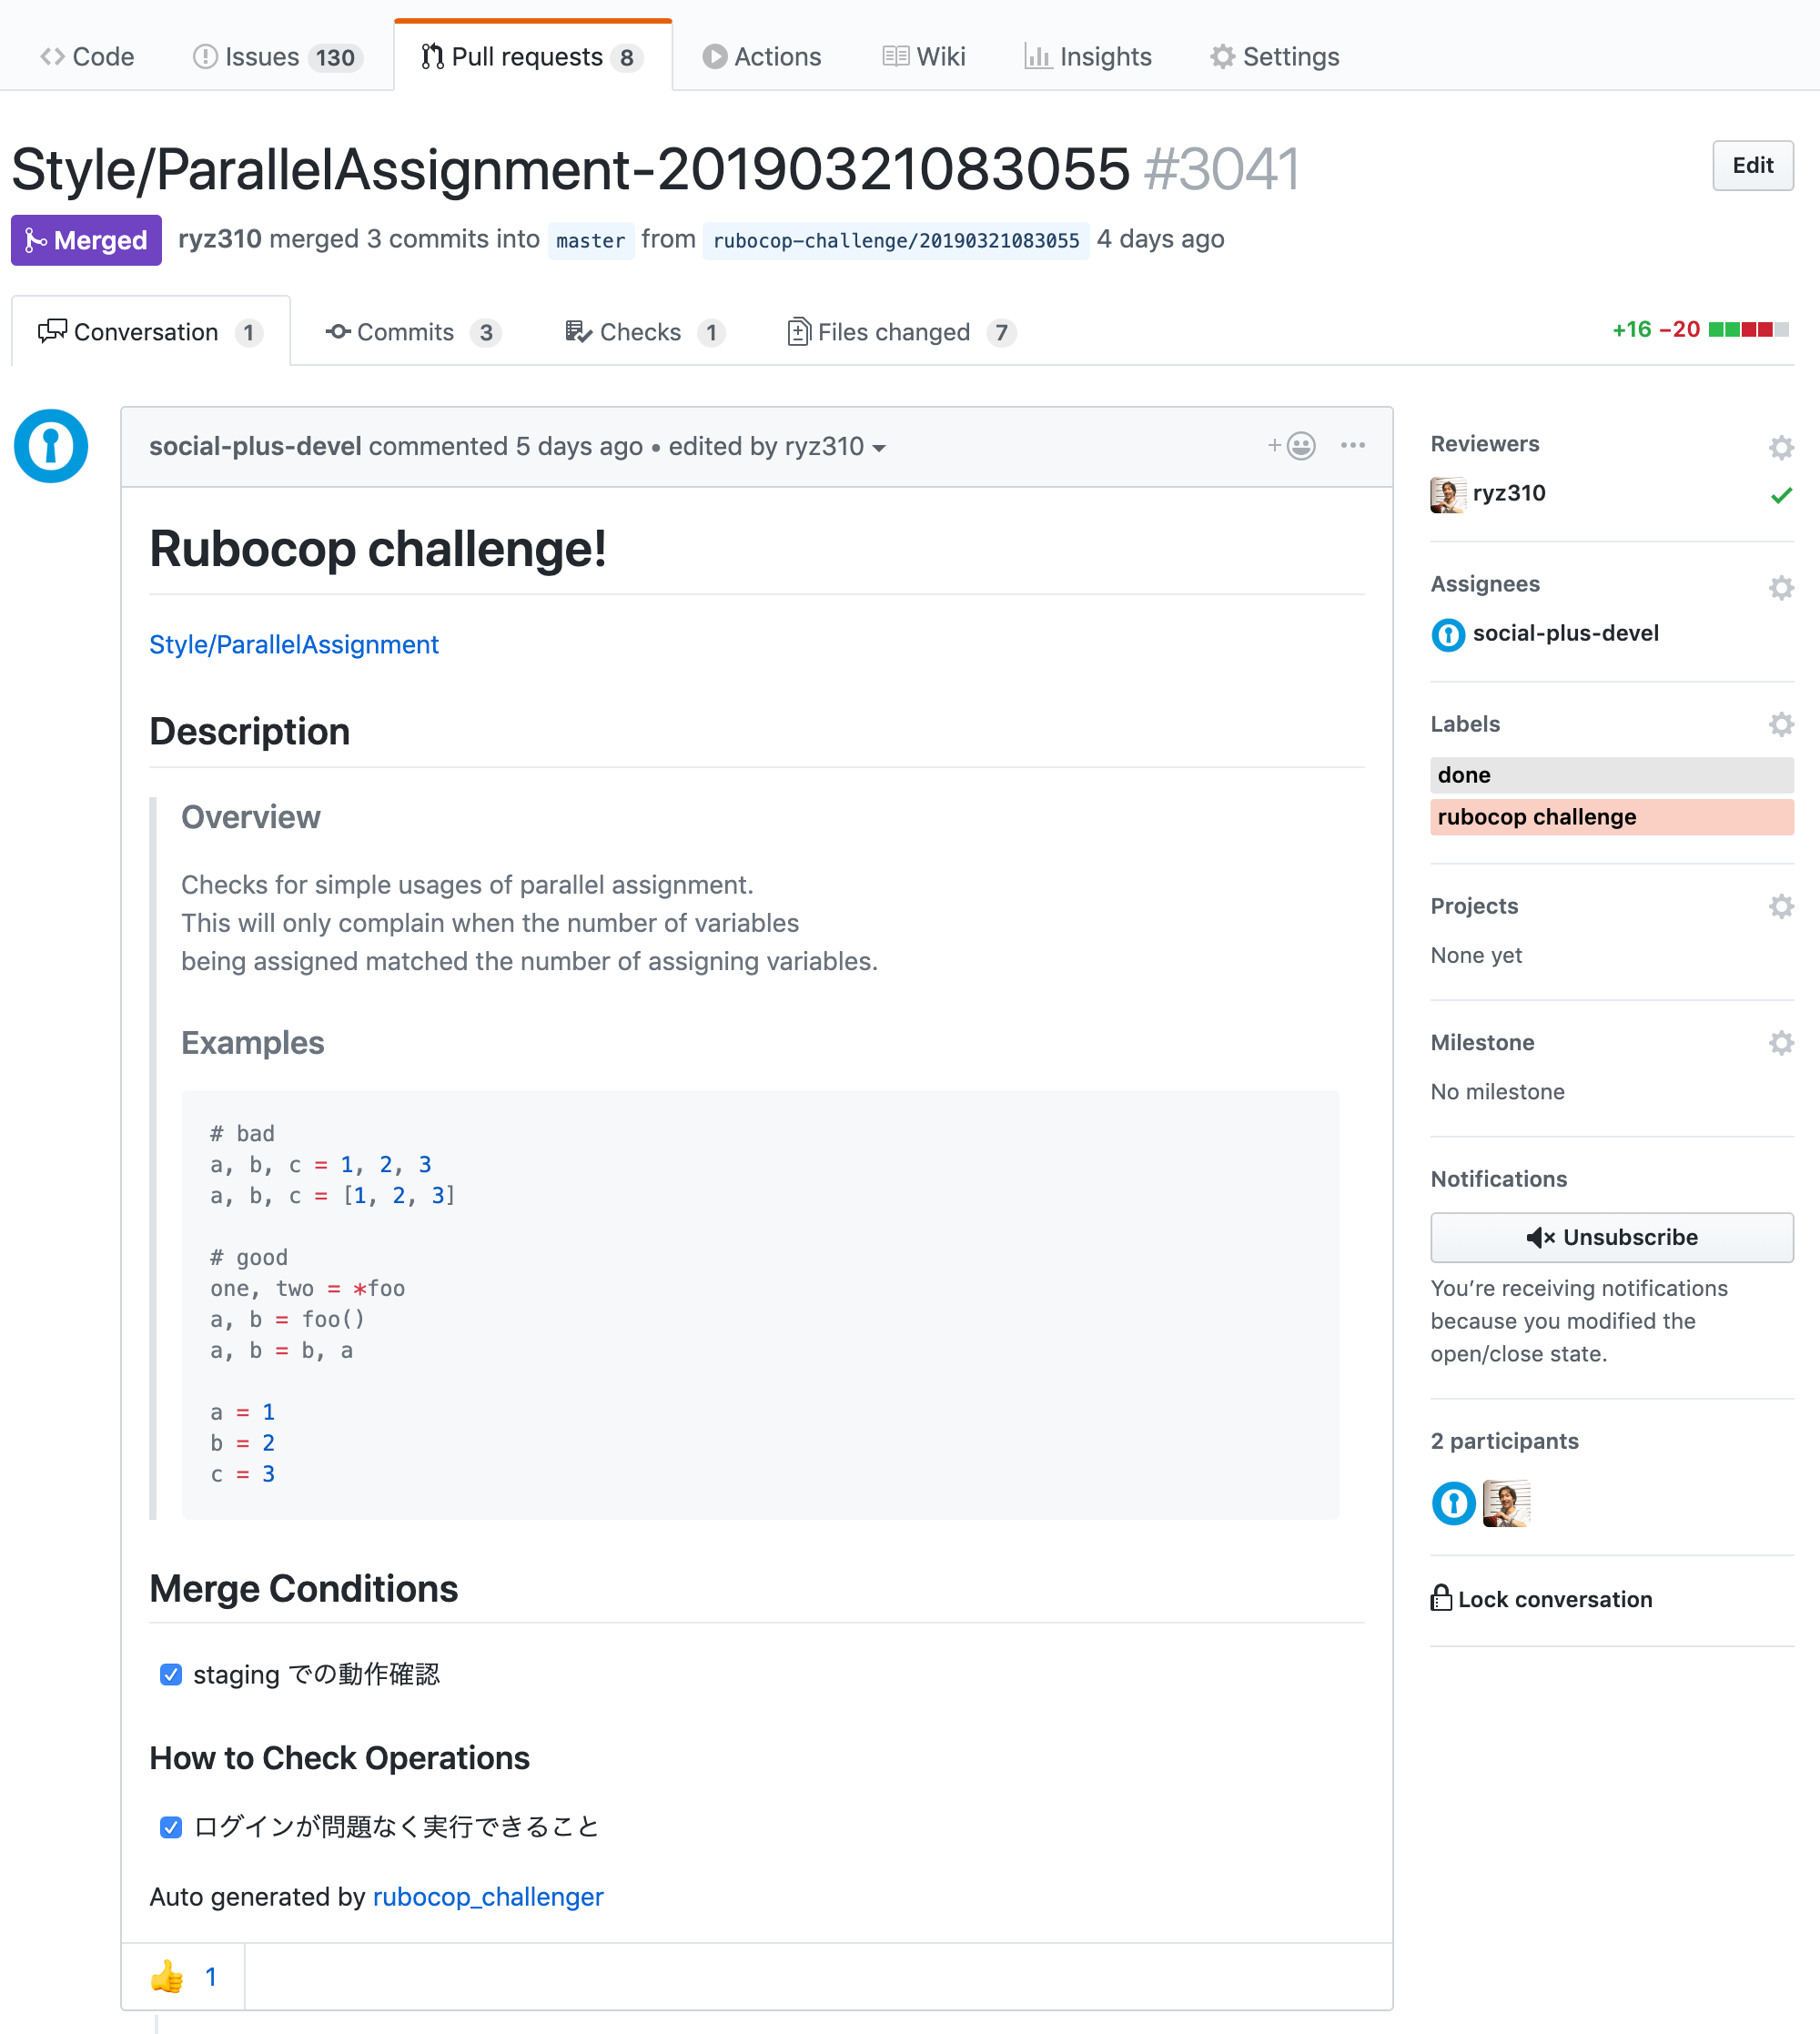 FireShot Capture 001 - Style_ParallelAssignment-20190321083055 by social-plus-devel · Pull R_ - github.com.png